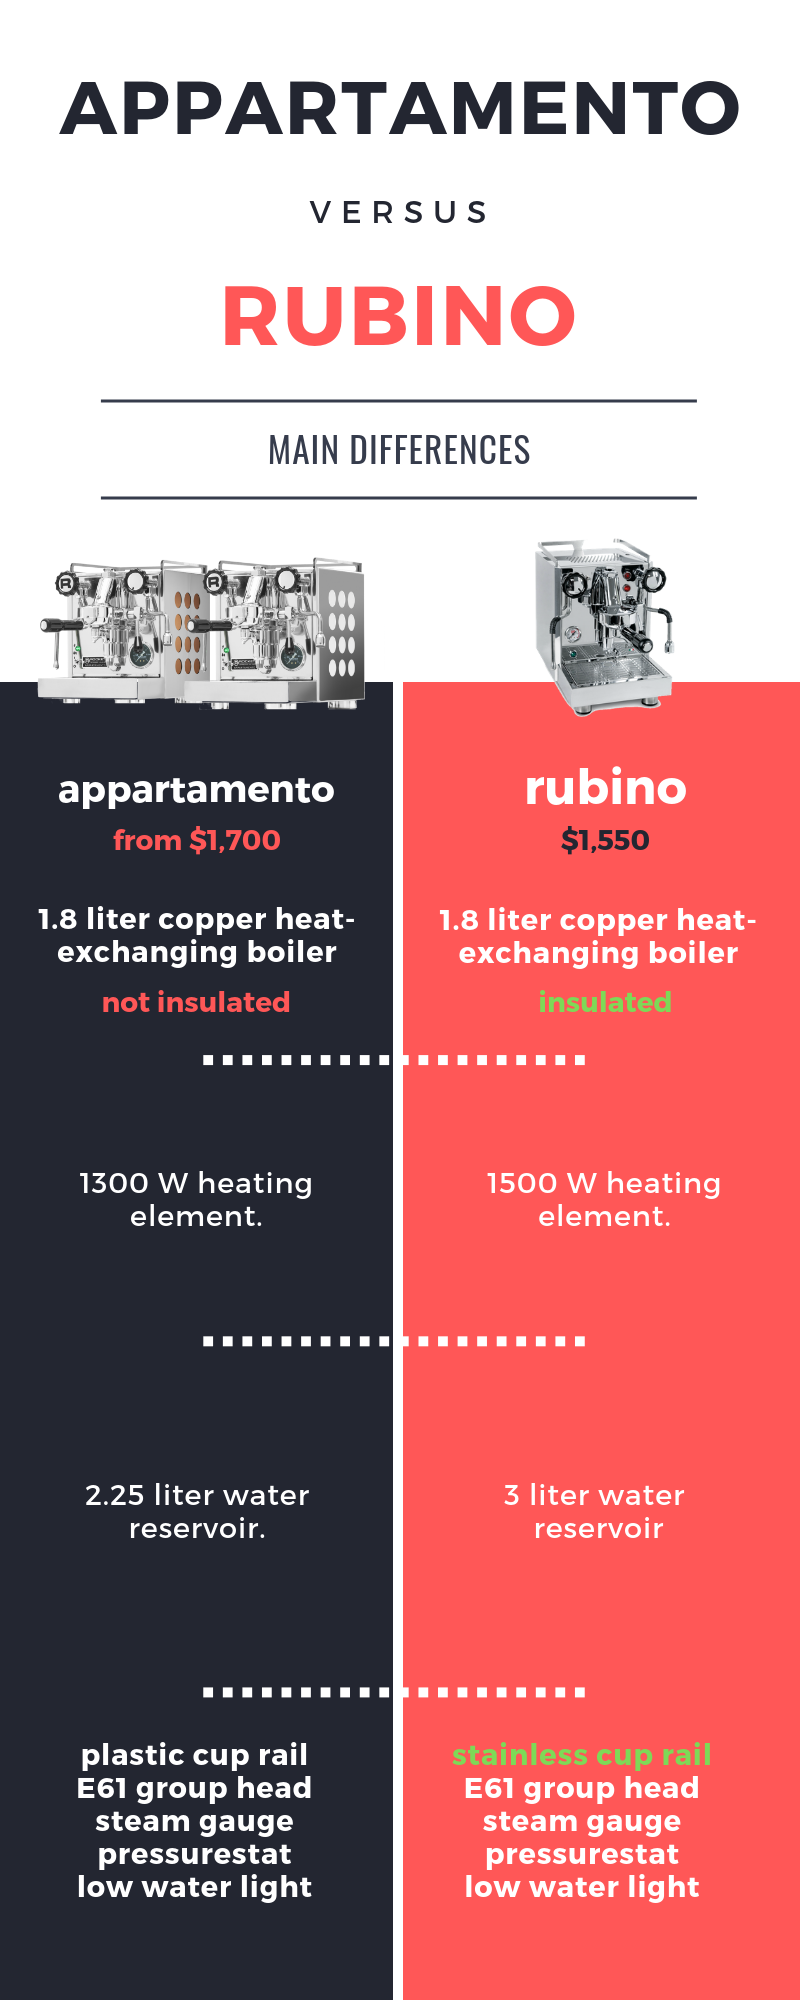 rocket-appartamento-vs-quick-mill-rubino-infographic